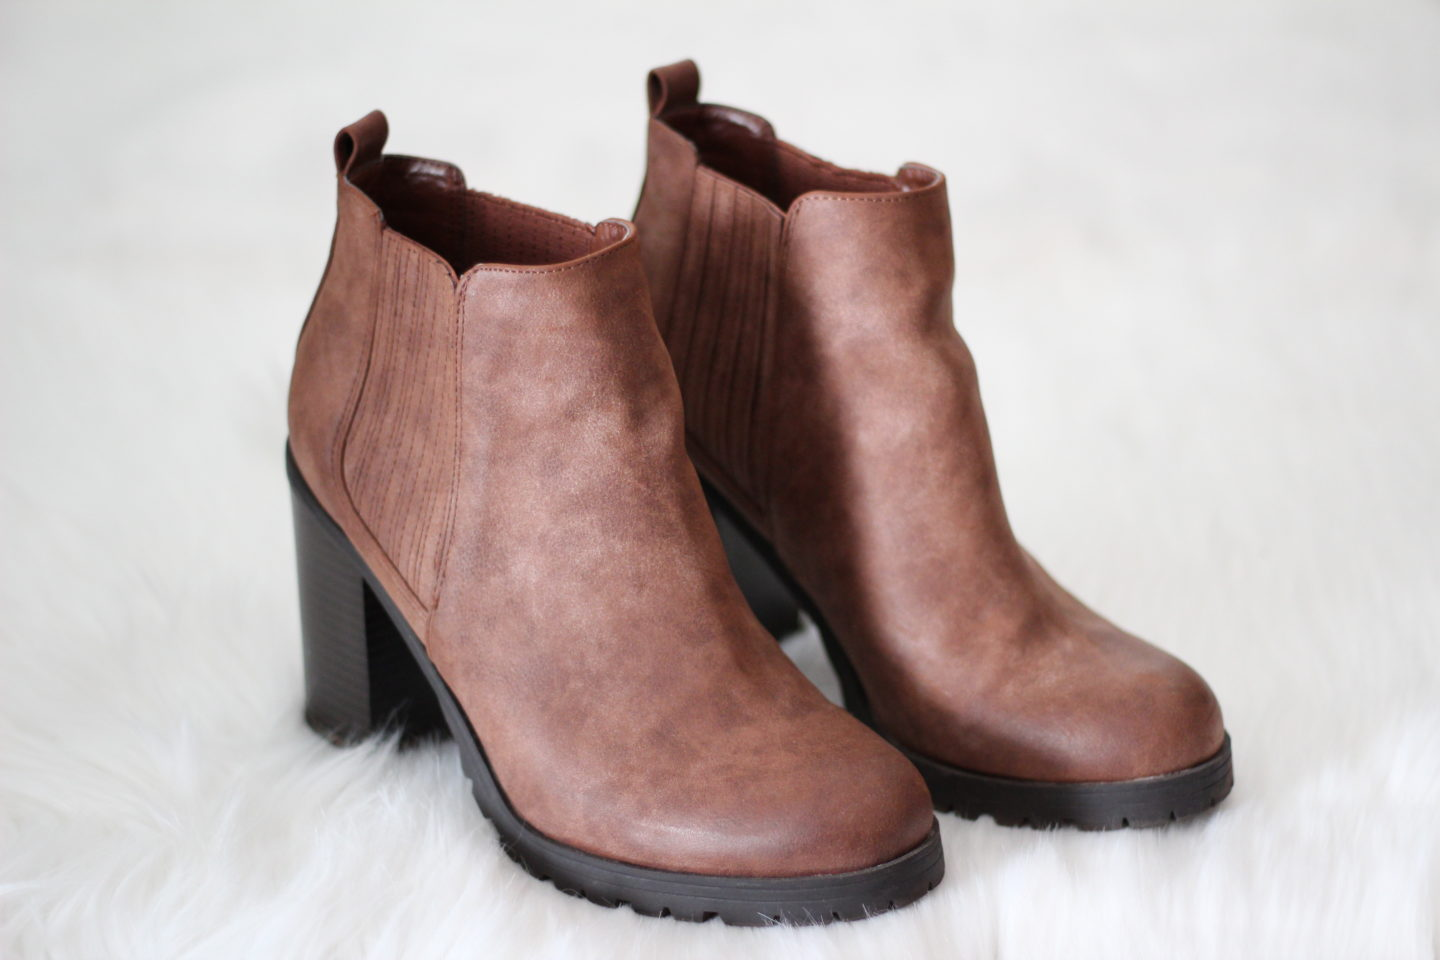 Target Sam and Libby Boots - Chelsea de Castro - Fall and Winter Booties